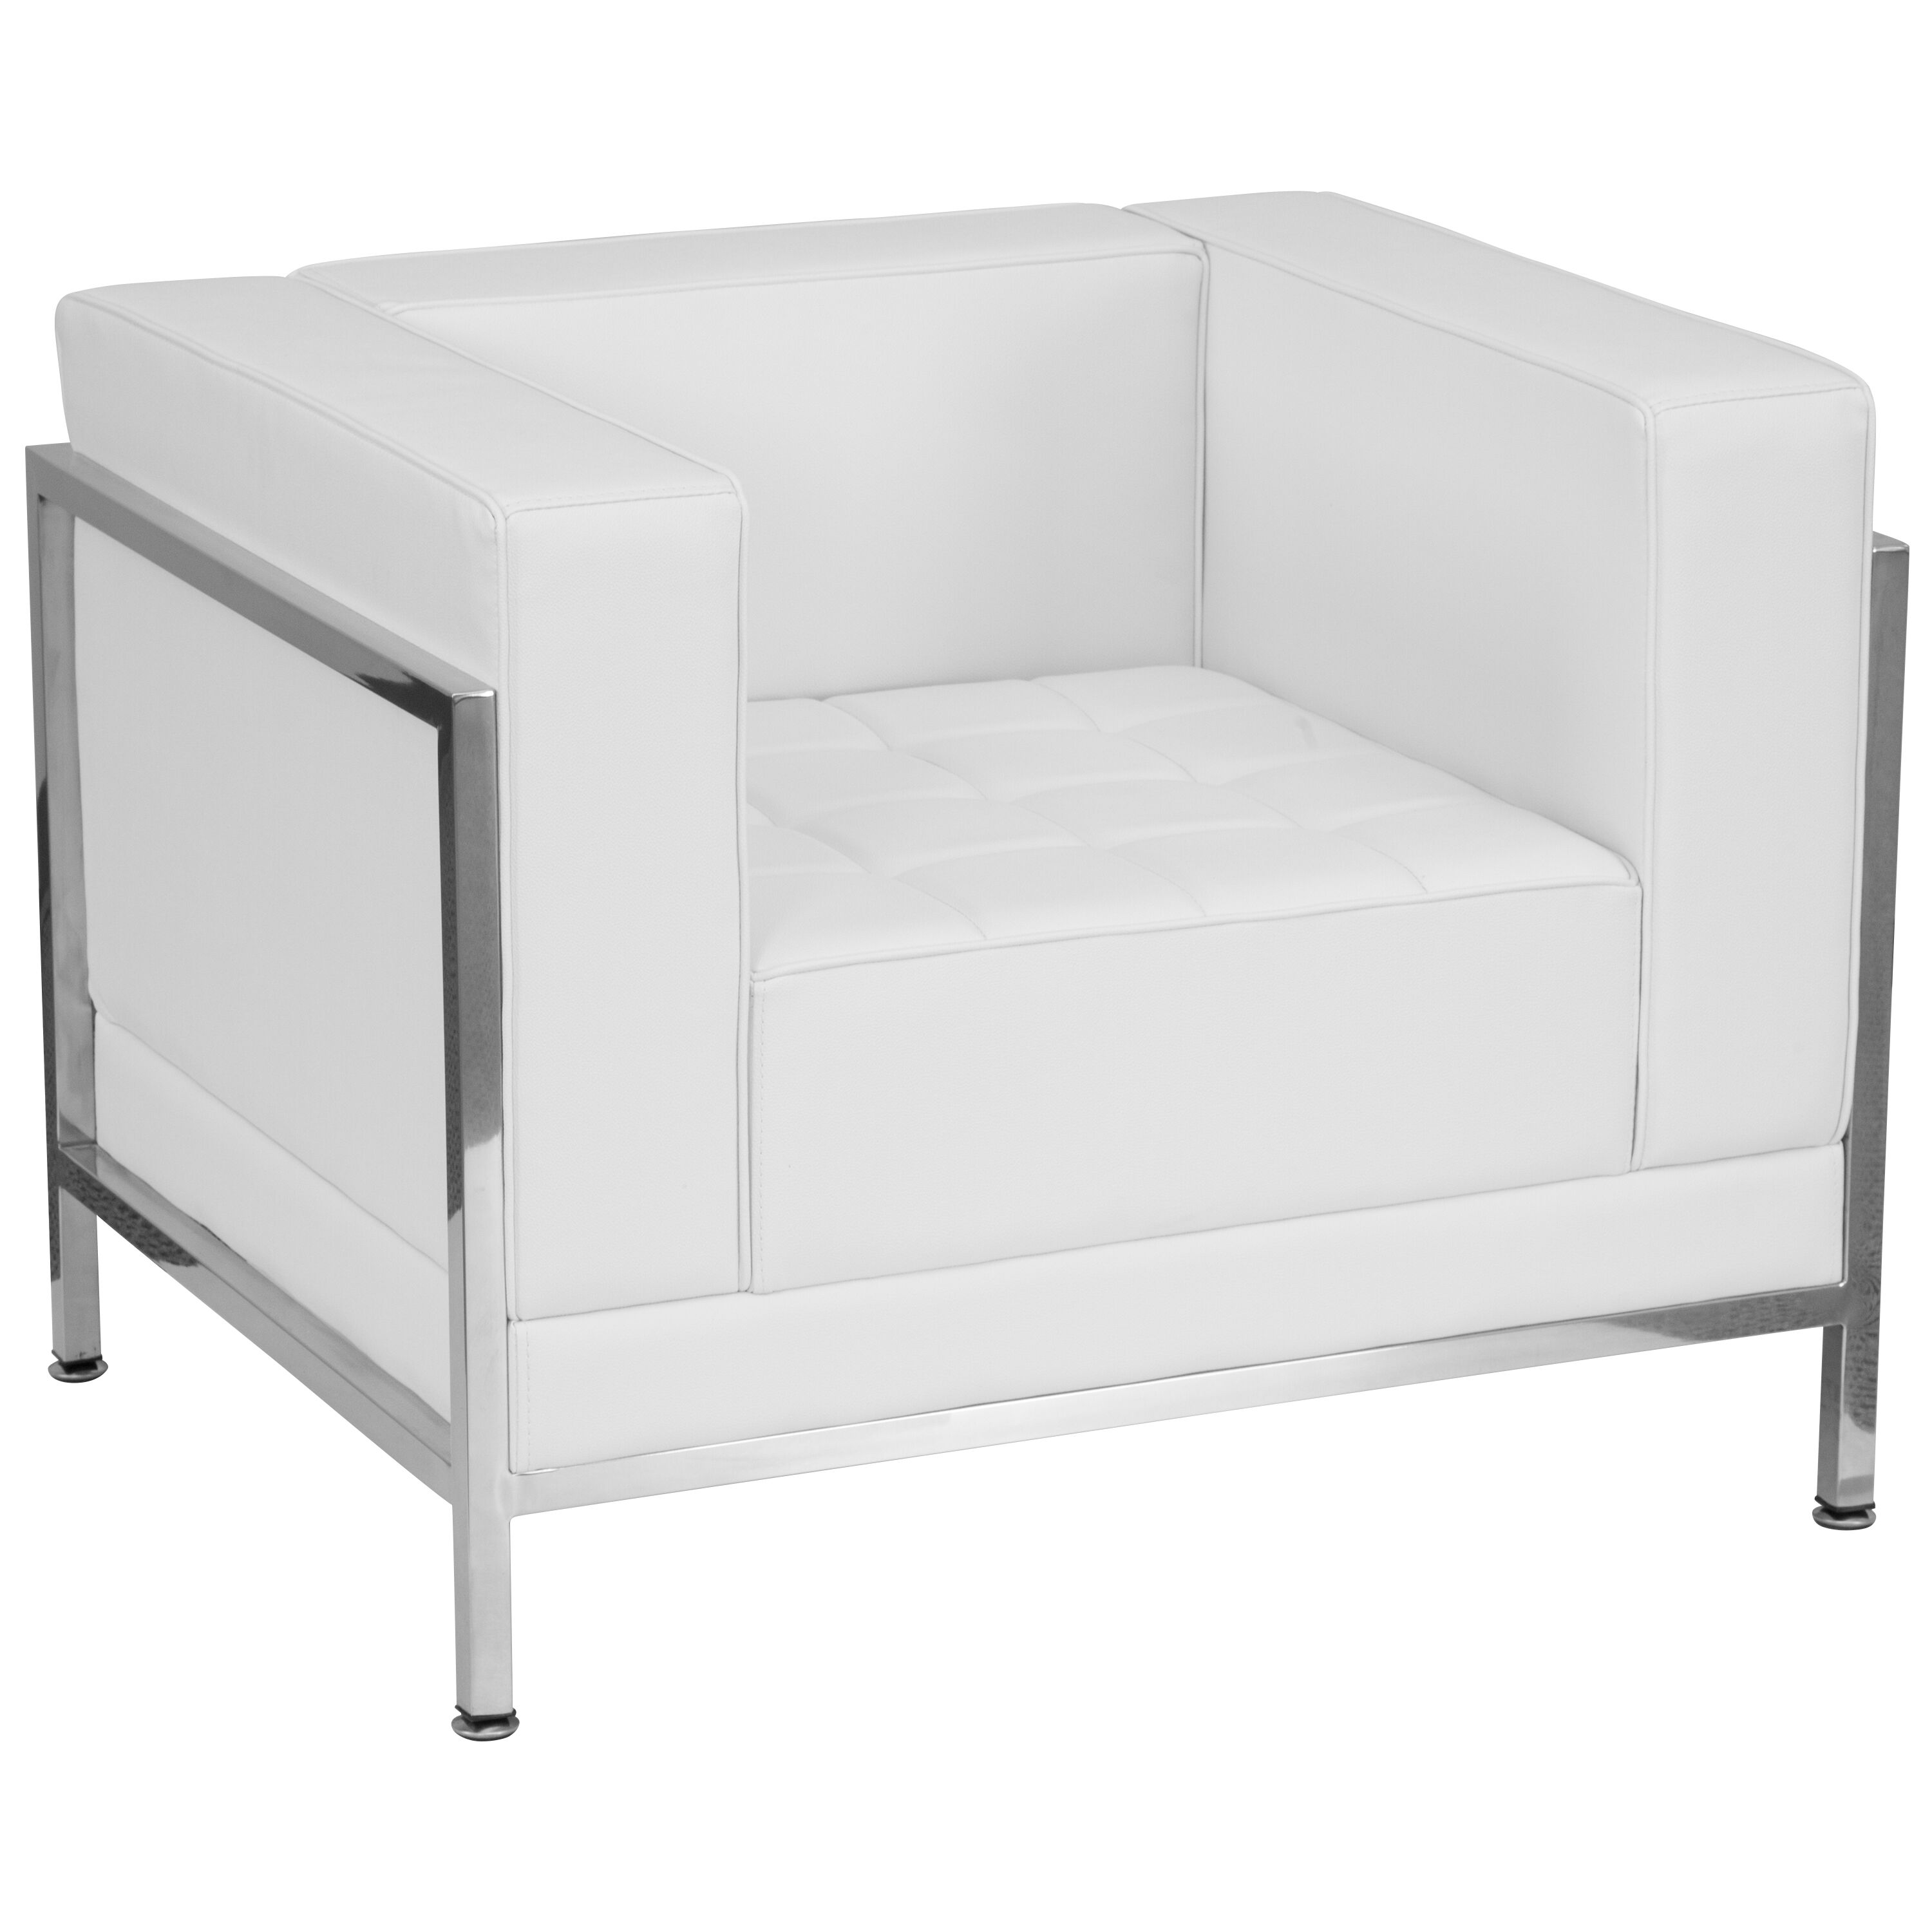 white leather chairs for sale modern wingback chair zb imag wh gg bizchair com our hercules imagination series contemporary melrose with encasing frame is on now